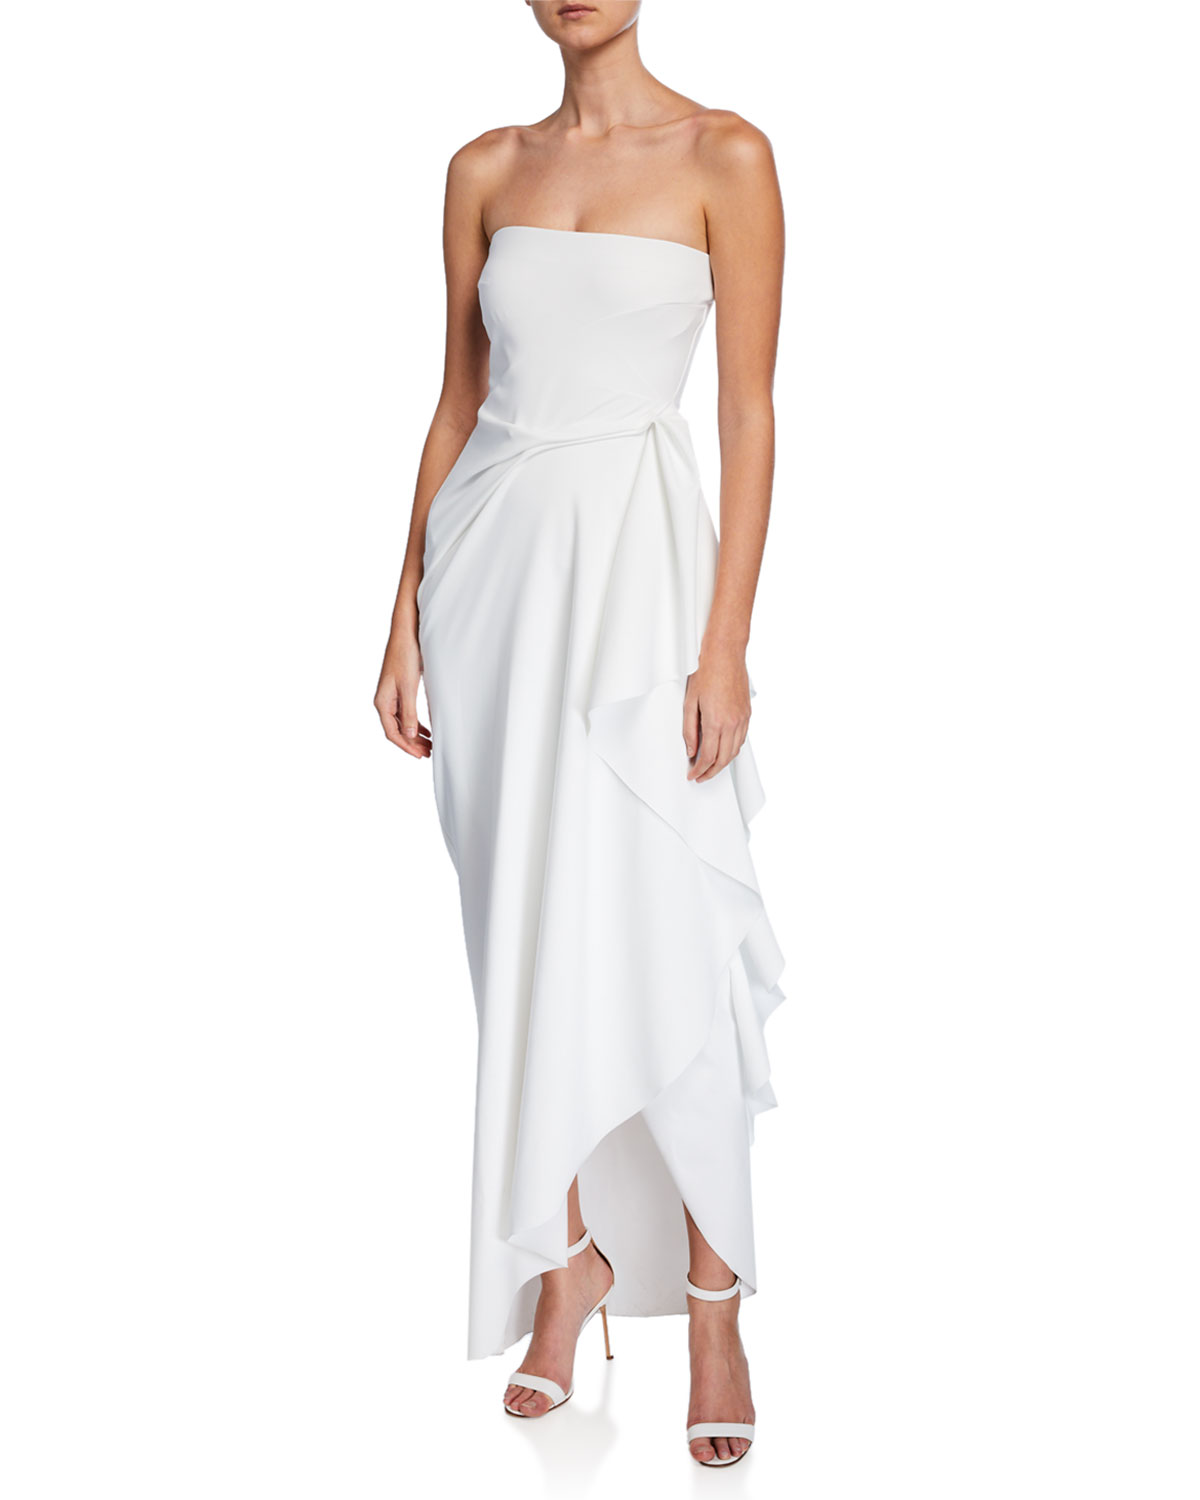 b7c155e168 Chiara Boni La Petite RobeNyaveth Strapless Bustier Side-Drape Long Dress